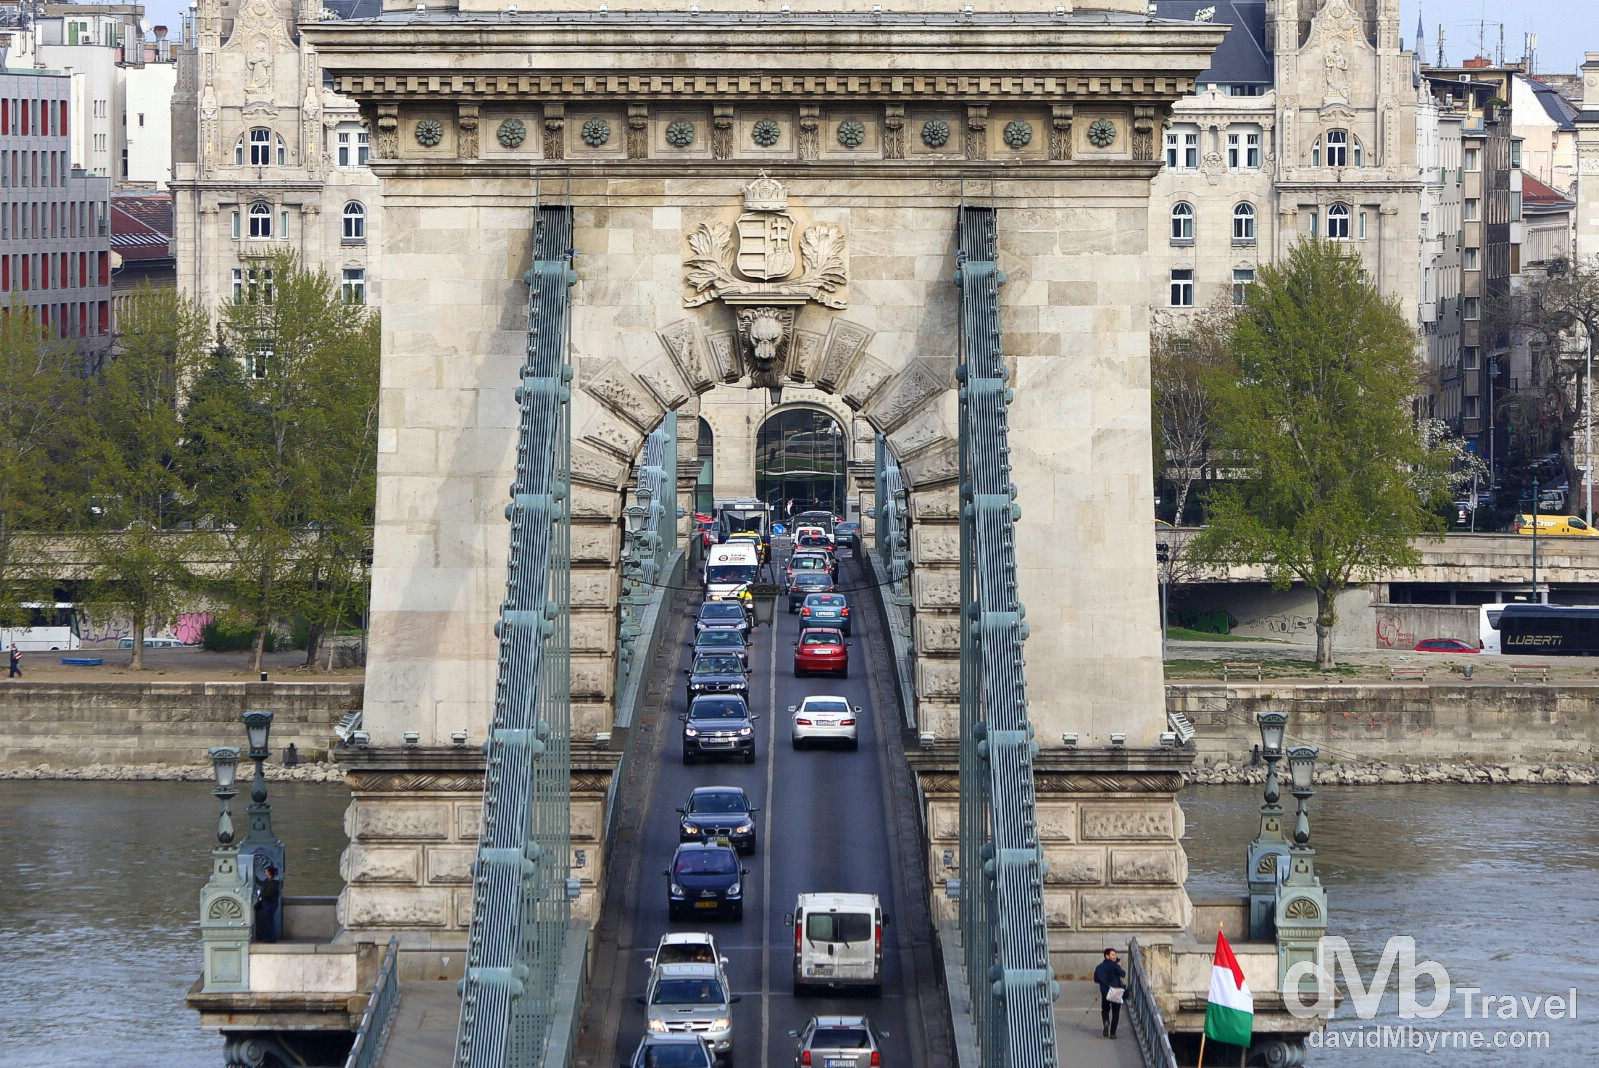 Traffic on the Chain Bridge spanning the Danube River in Budapest, Hungary. March 26th, 2014.